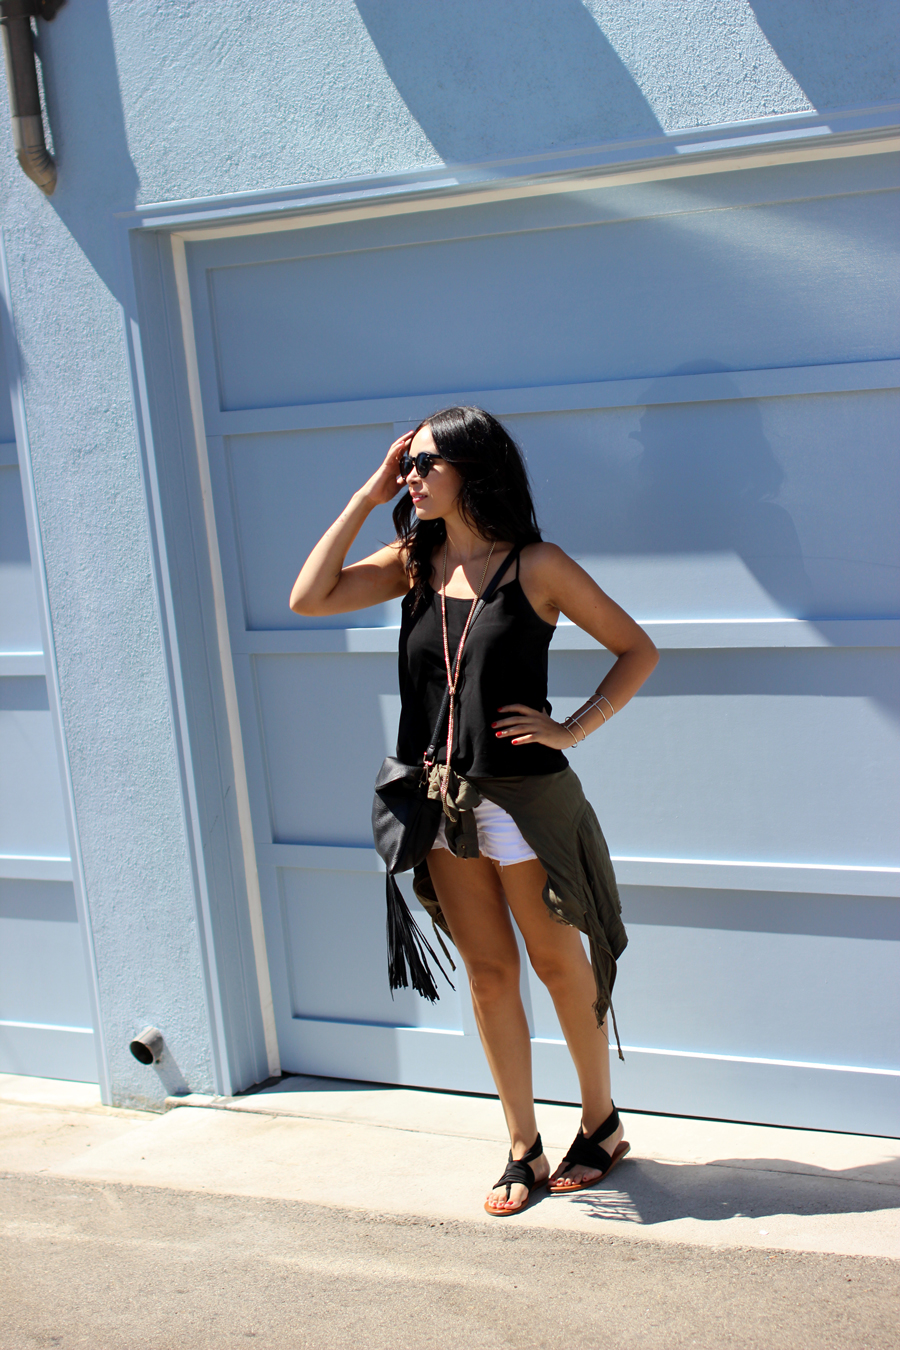 FIXIN-TO-THRILL-CALIFORNIA-VACATION-VENICE-BEACH-SHORTS-BLACK-WHITE-FALL-ATX-AUSTIN-STYLE-BLOG-SHIRTS-COLORS-TRENDS-FW15-TRENDY-CHIC-GLAM-FASHION-TEXAS-TRAVEL-5